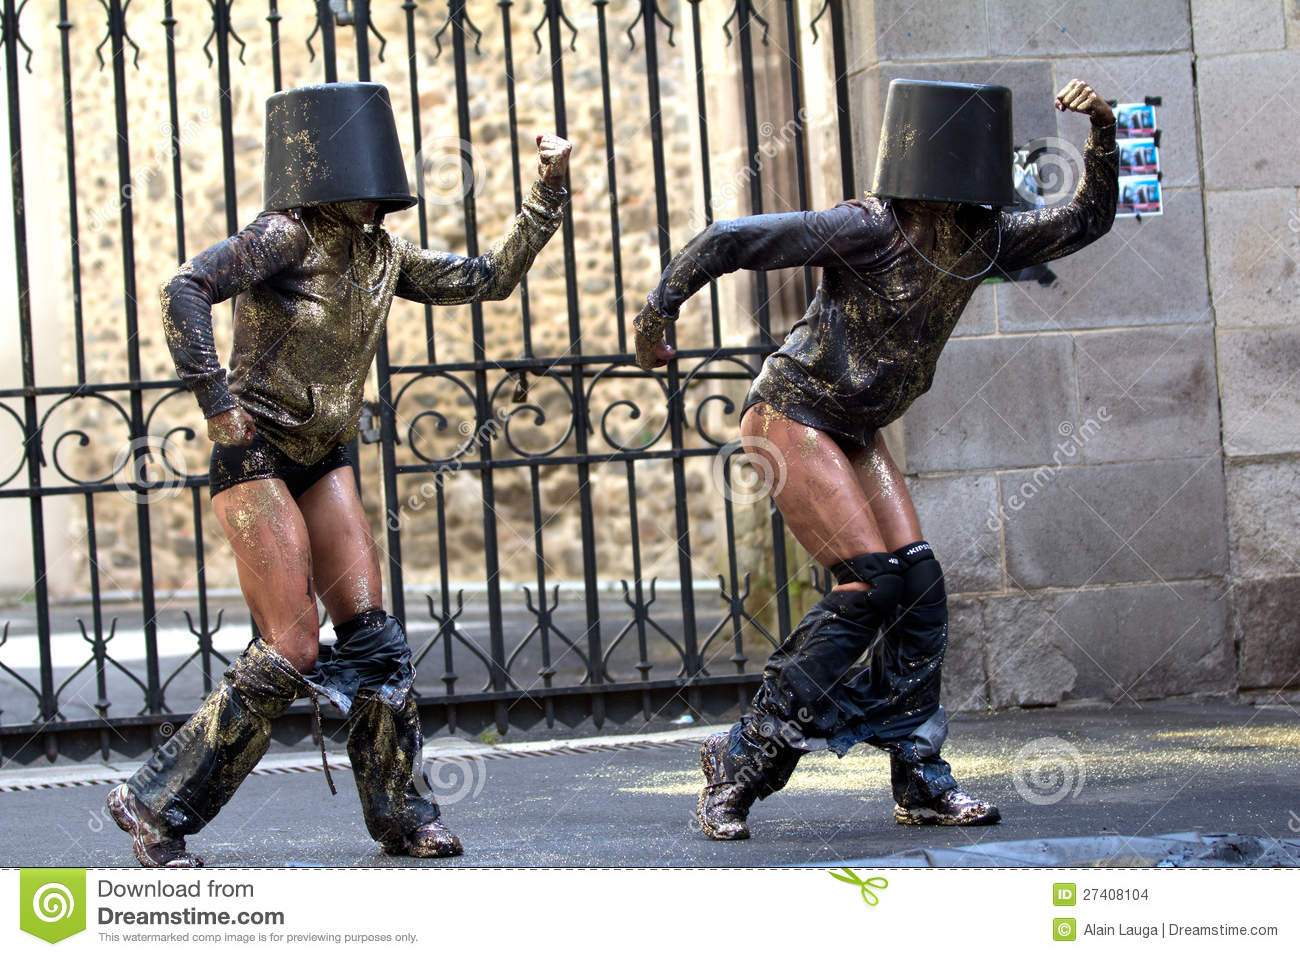 Dancers with buckets on the head.